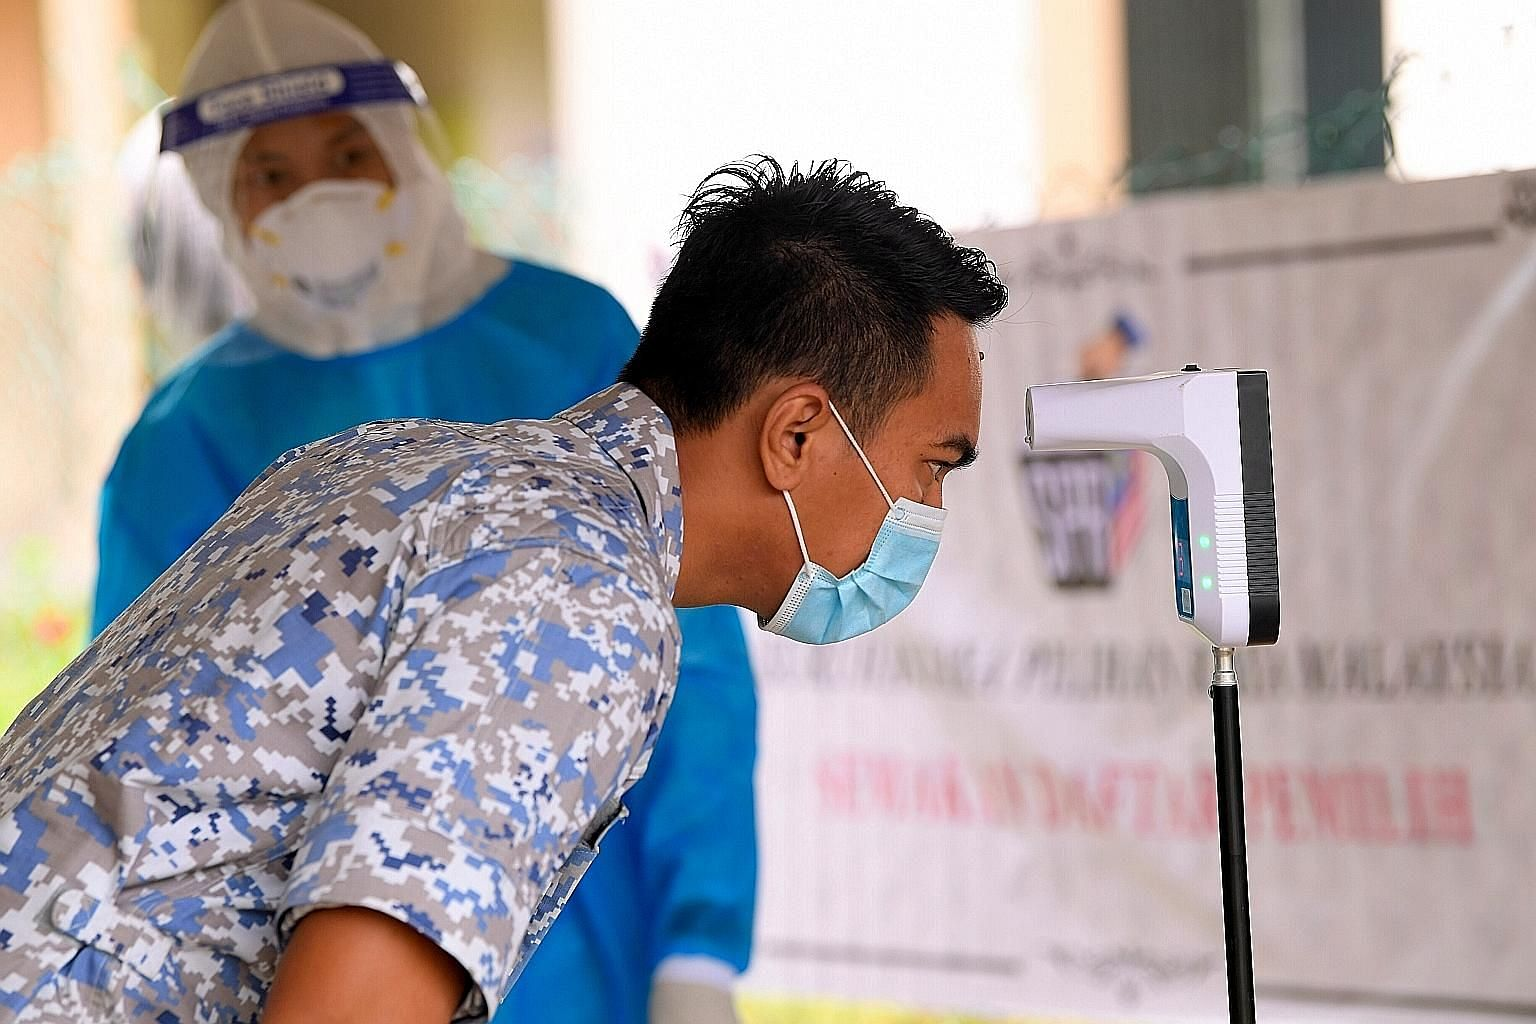 A member of the Malaysian military having his temperature checked before being able to cast his ballot during early voting in the Sabah state election on Tuesday. PHOTO: BERNAMA